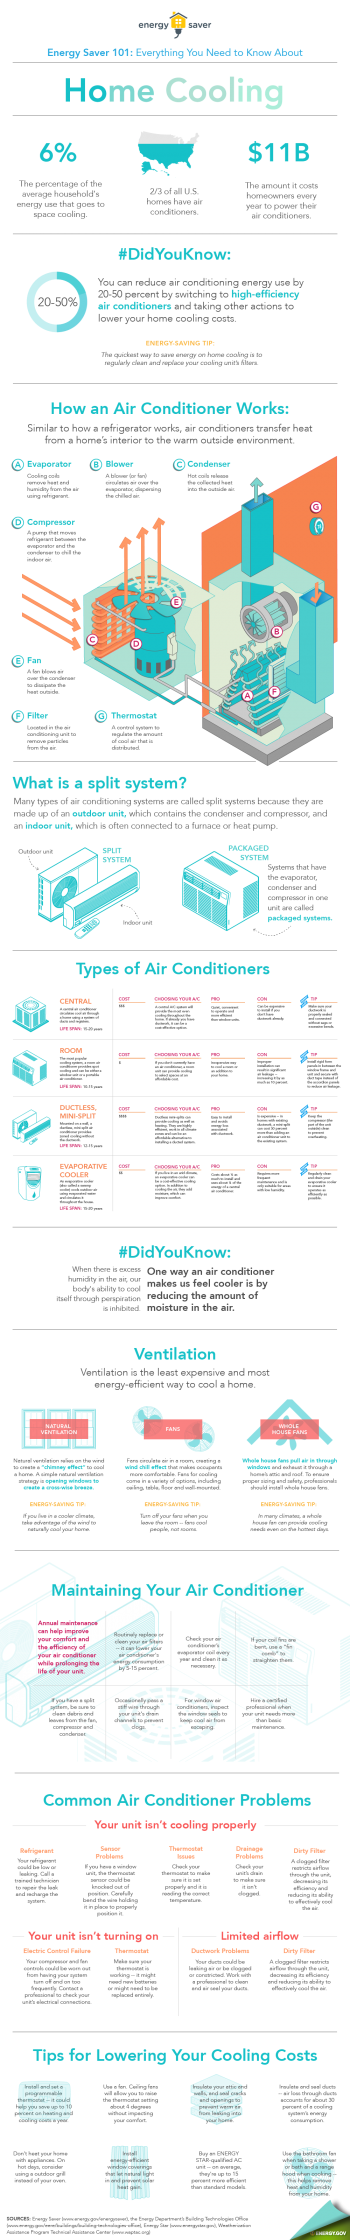 """Our Energy Saver 101 infographic covers everything you need to know about home cooling. Download a <a href=""""node/920771"""">high-resolution version</a> of the home cooling infographic. Infographic by <a href=""""node/379579"""">Sarah Gerrity</a>, Energy Department."""